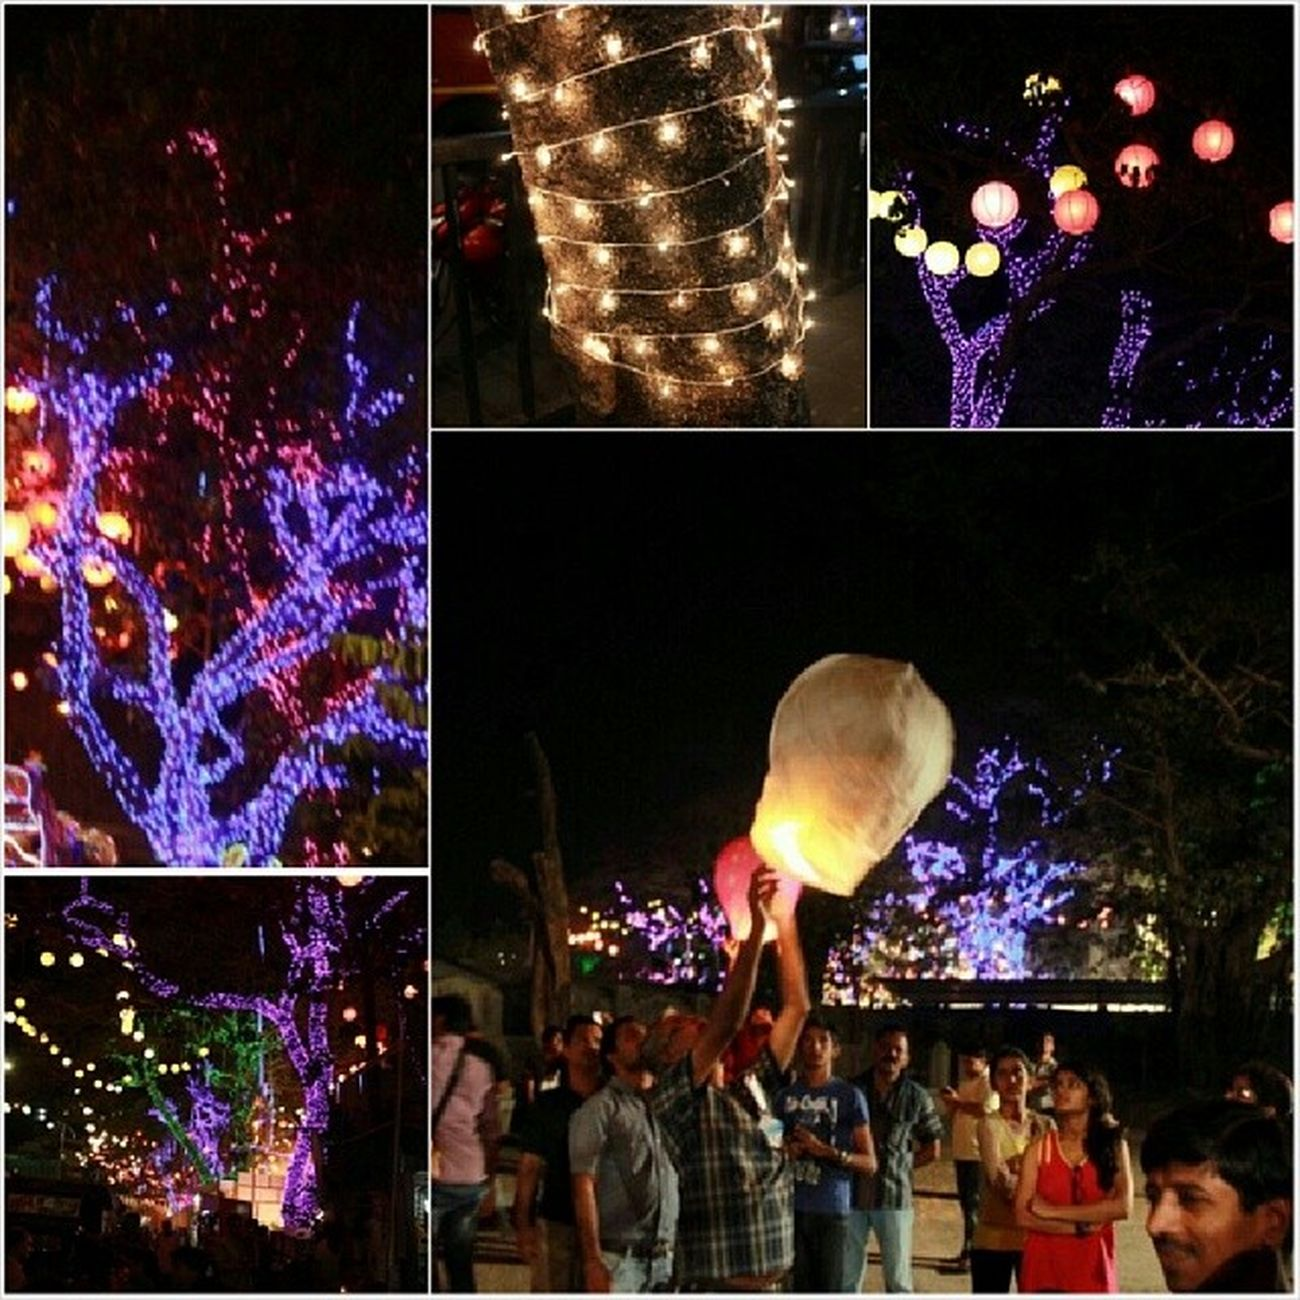 Gudipadwa celebration in the eve Talaopali Thane Gudipadwa Lights Collage Instagram Instaedit Instamoment Instafest